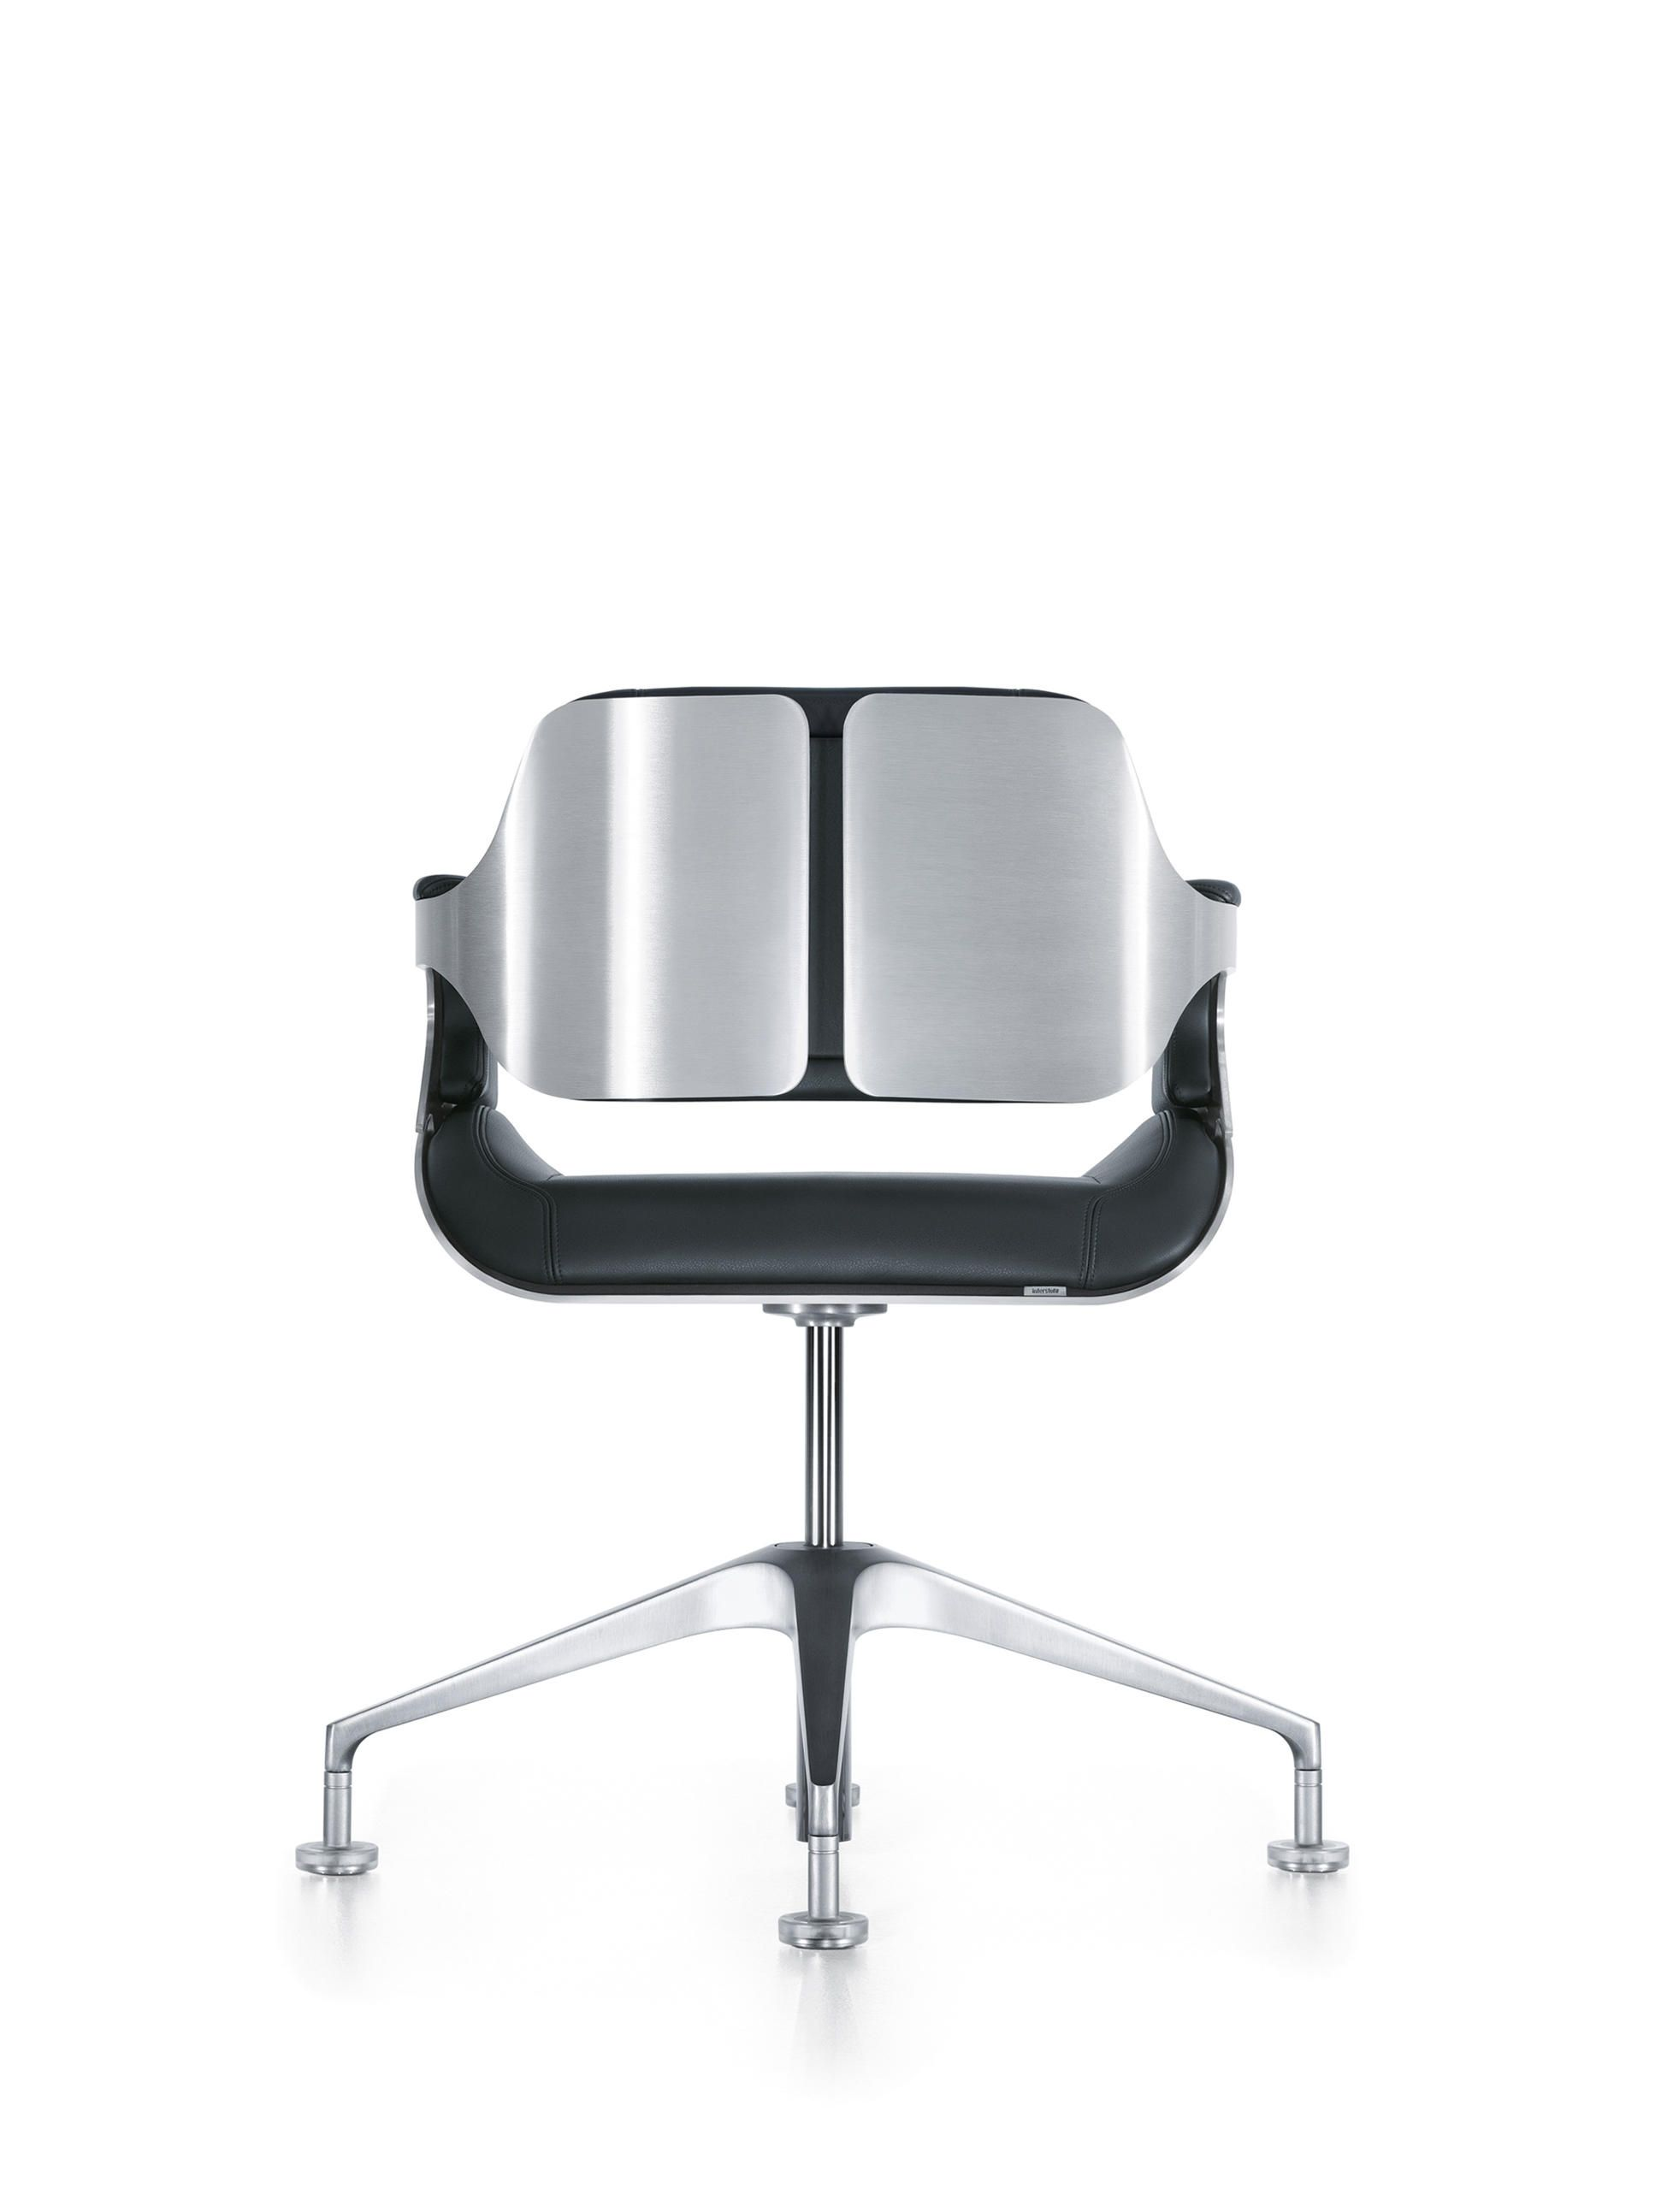 SILVER 101S - Conference chairs from Interstuhl Büromöbel GmbH ...